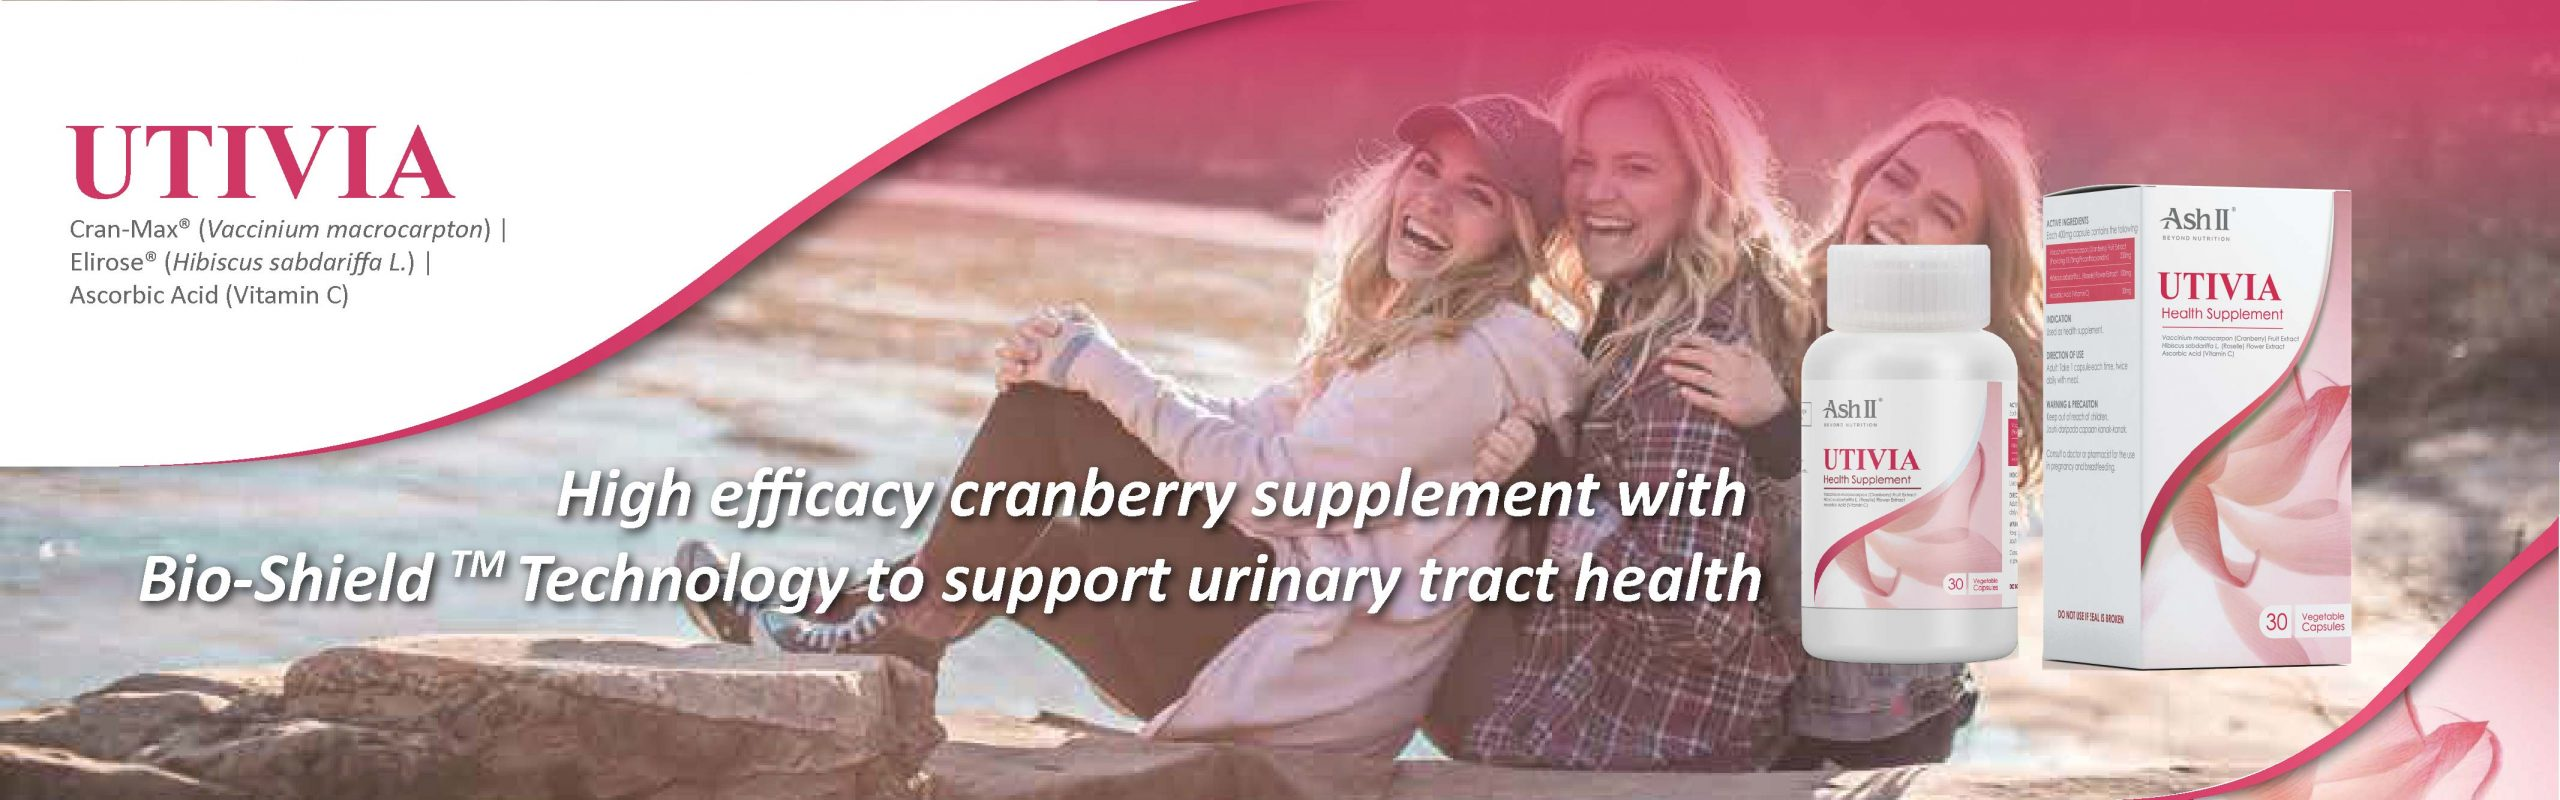 UTIVIA - Cranberry Supplement to Support Urinary Tract Health